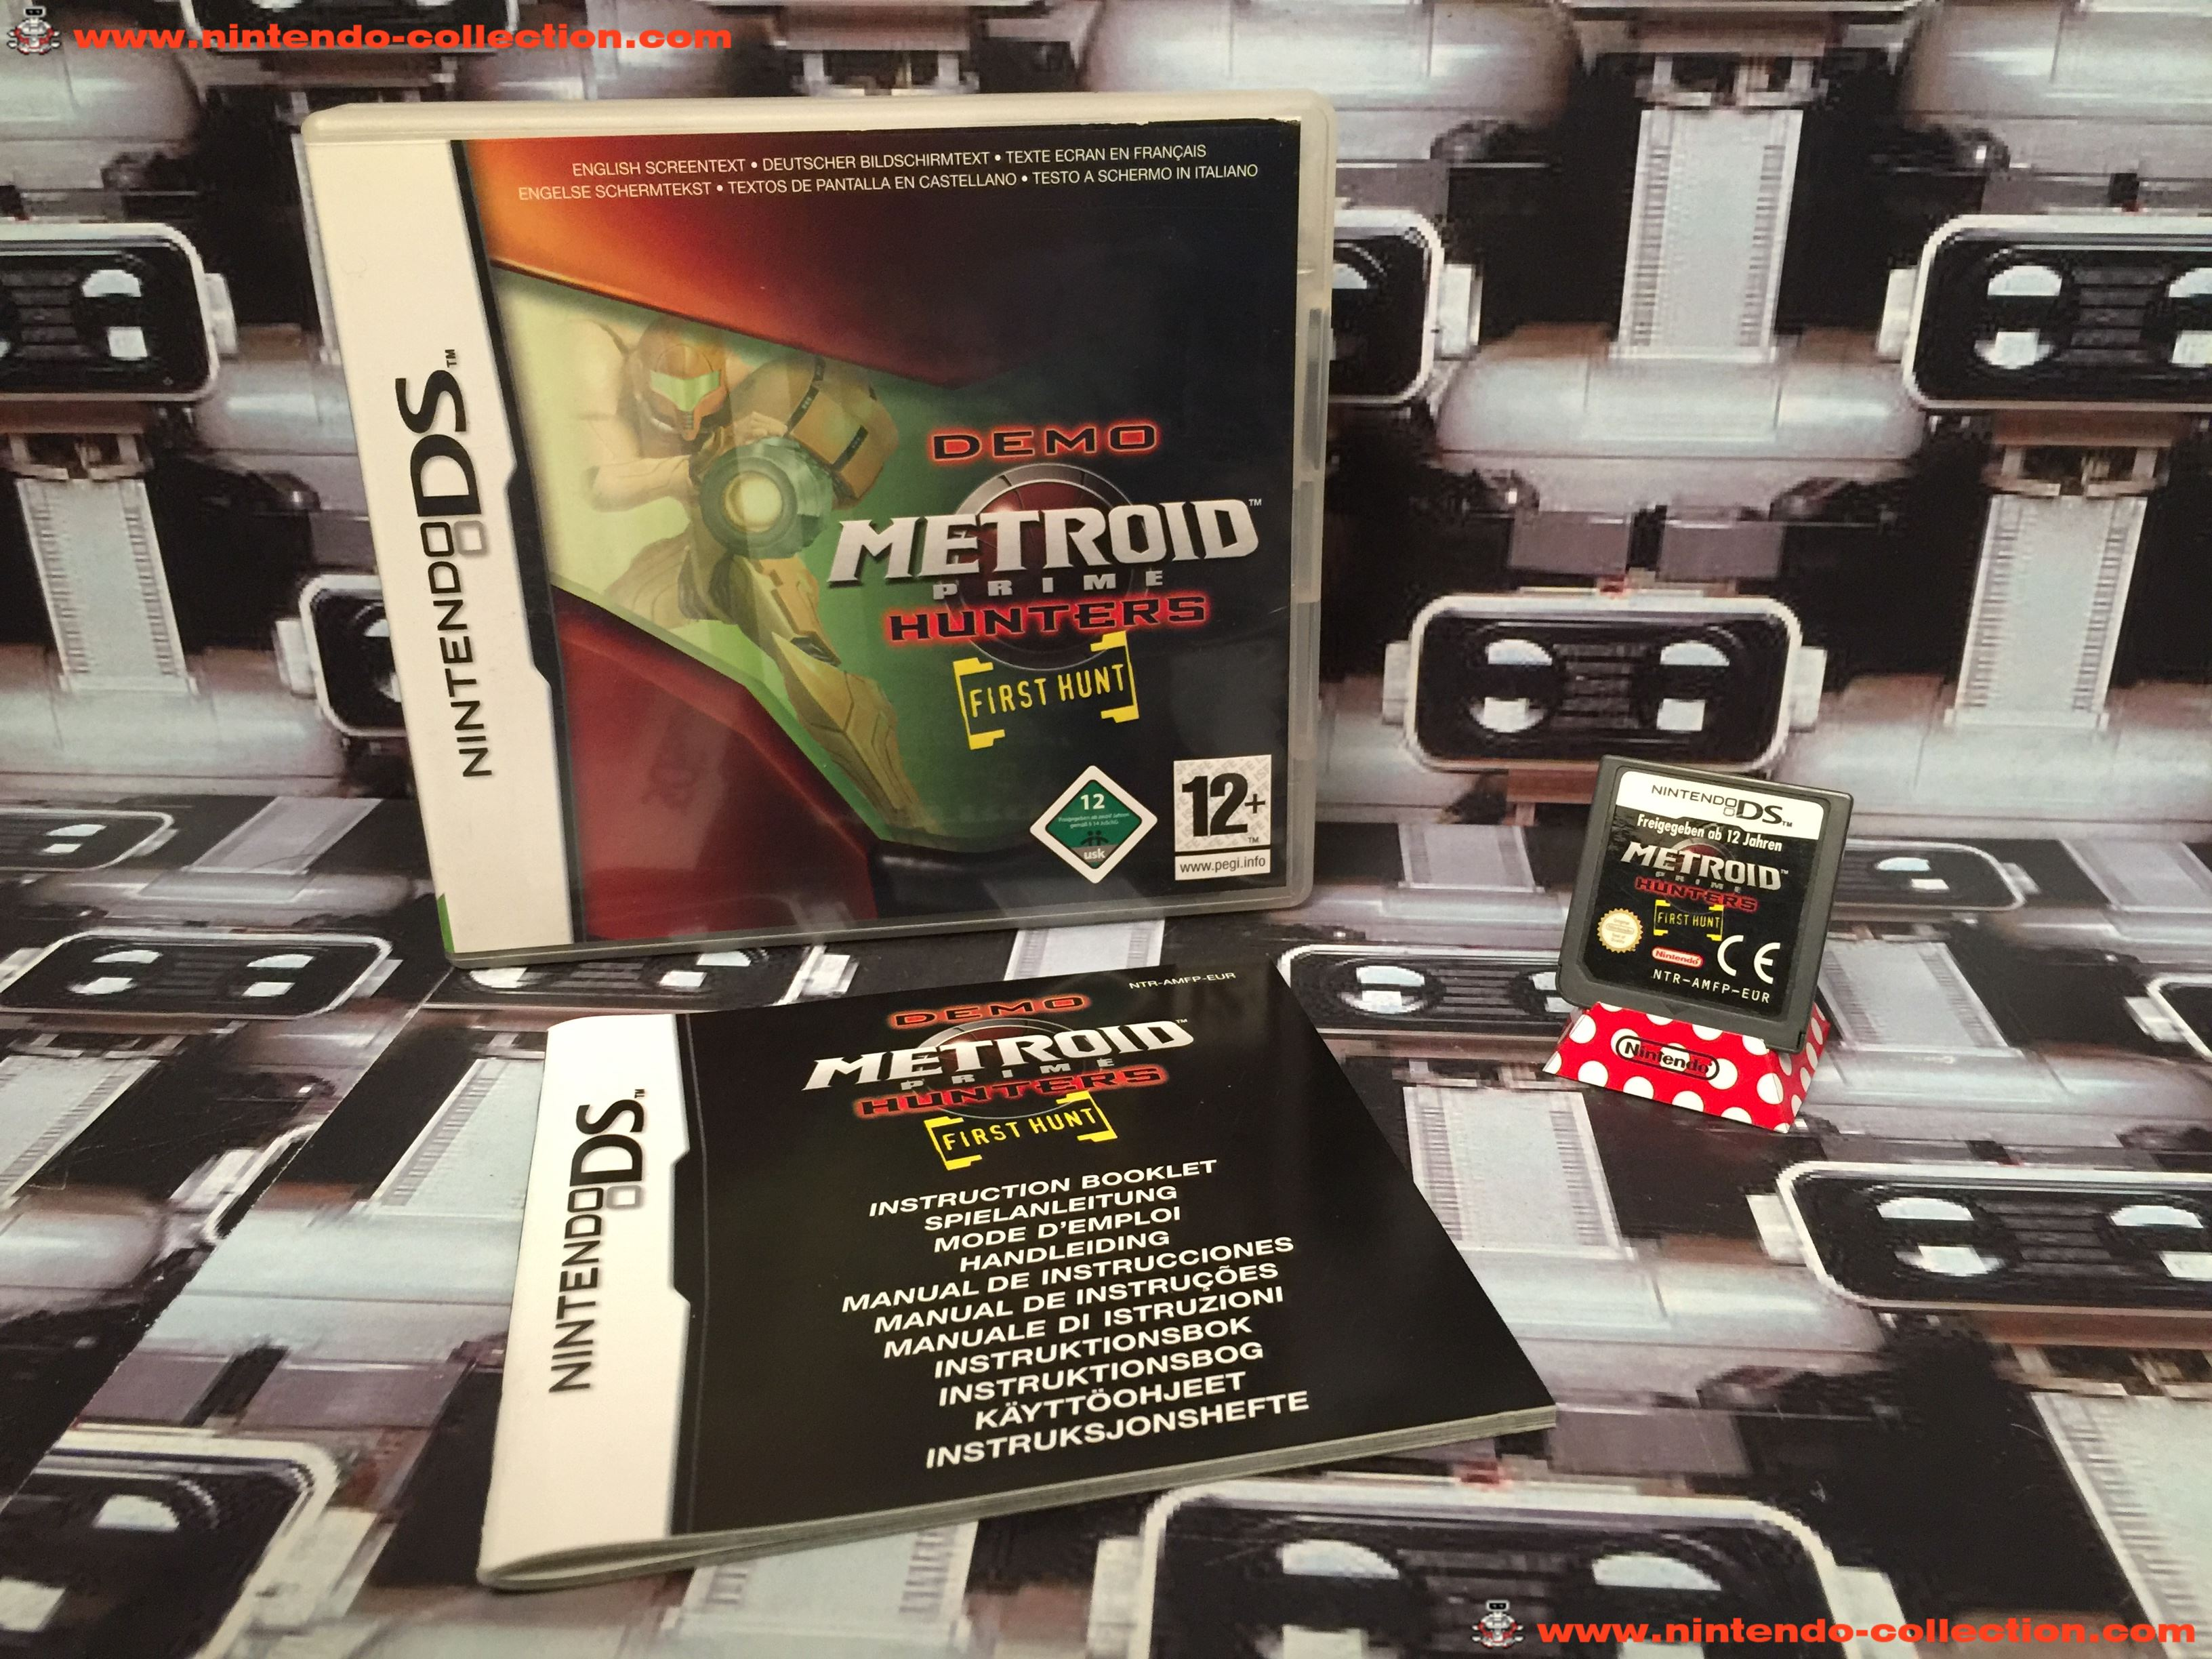 www.nintendo-collection.com - Nintendo DS Jeux Game Demo Metroid Prime Hunters First Hunt Euro